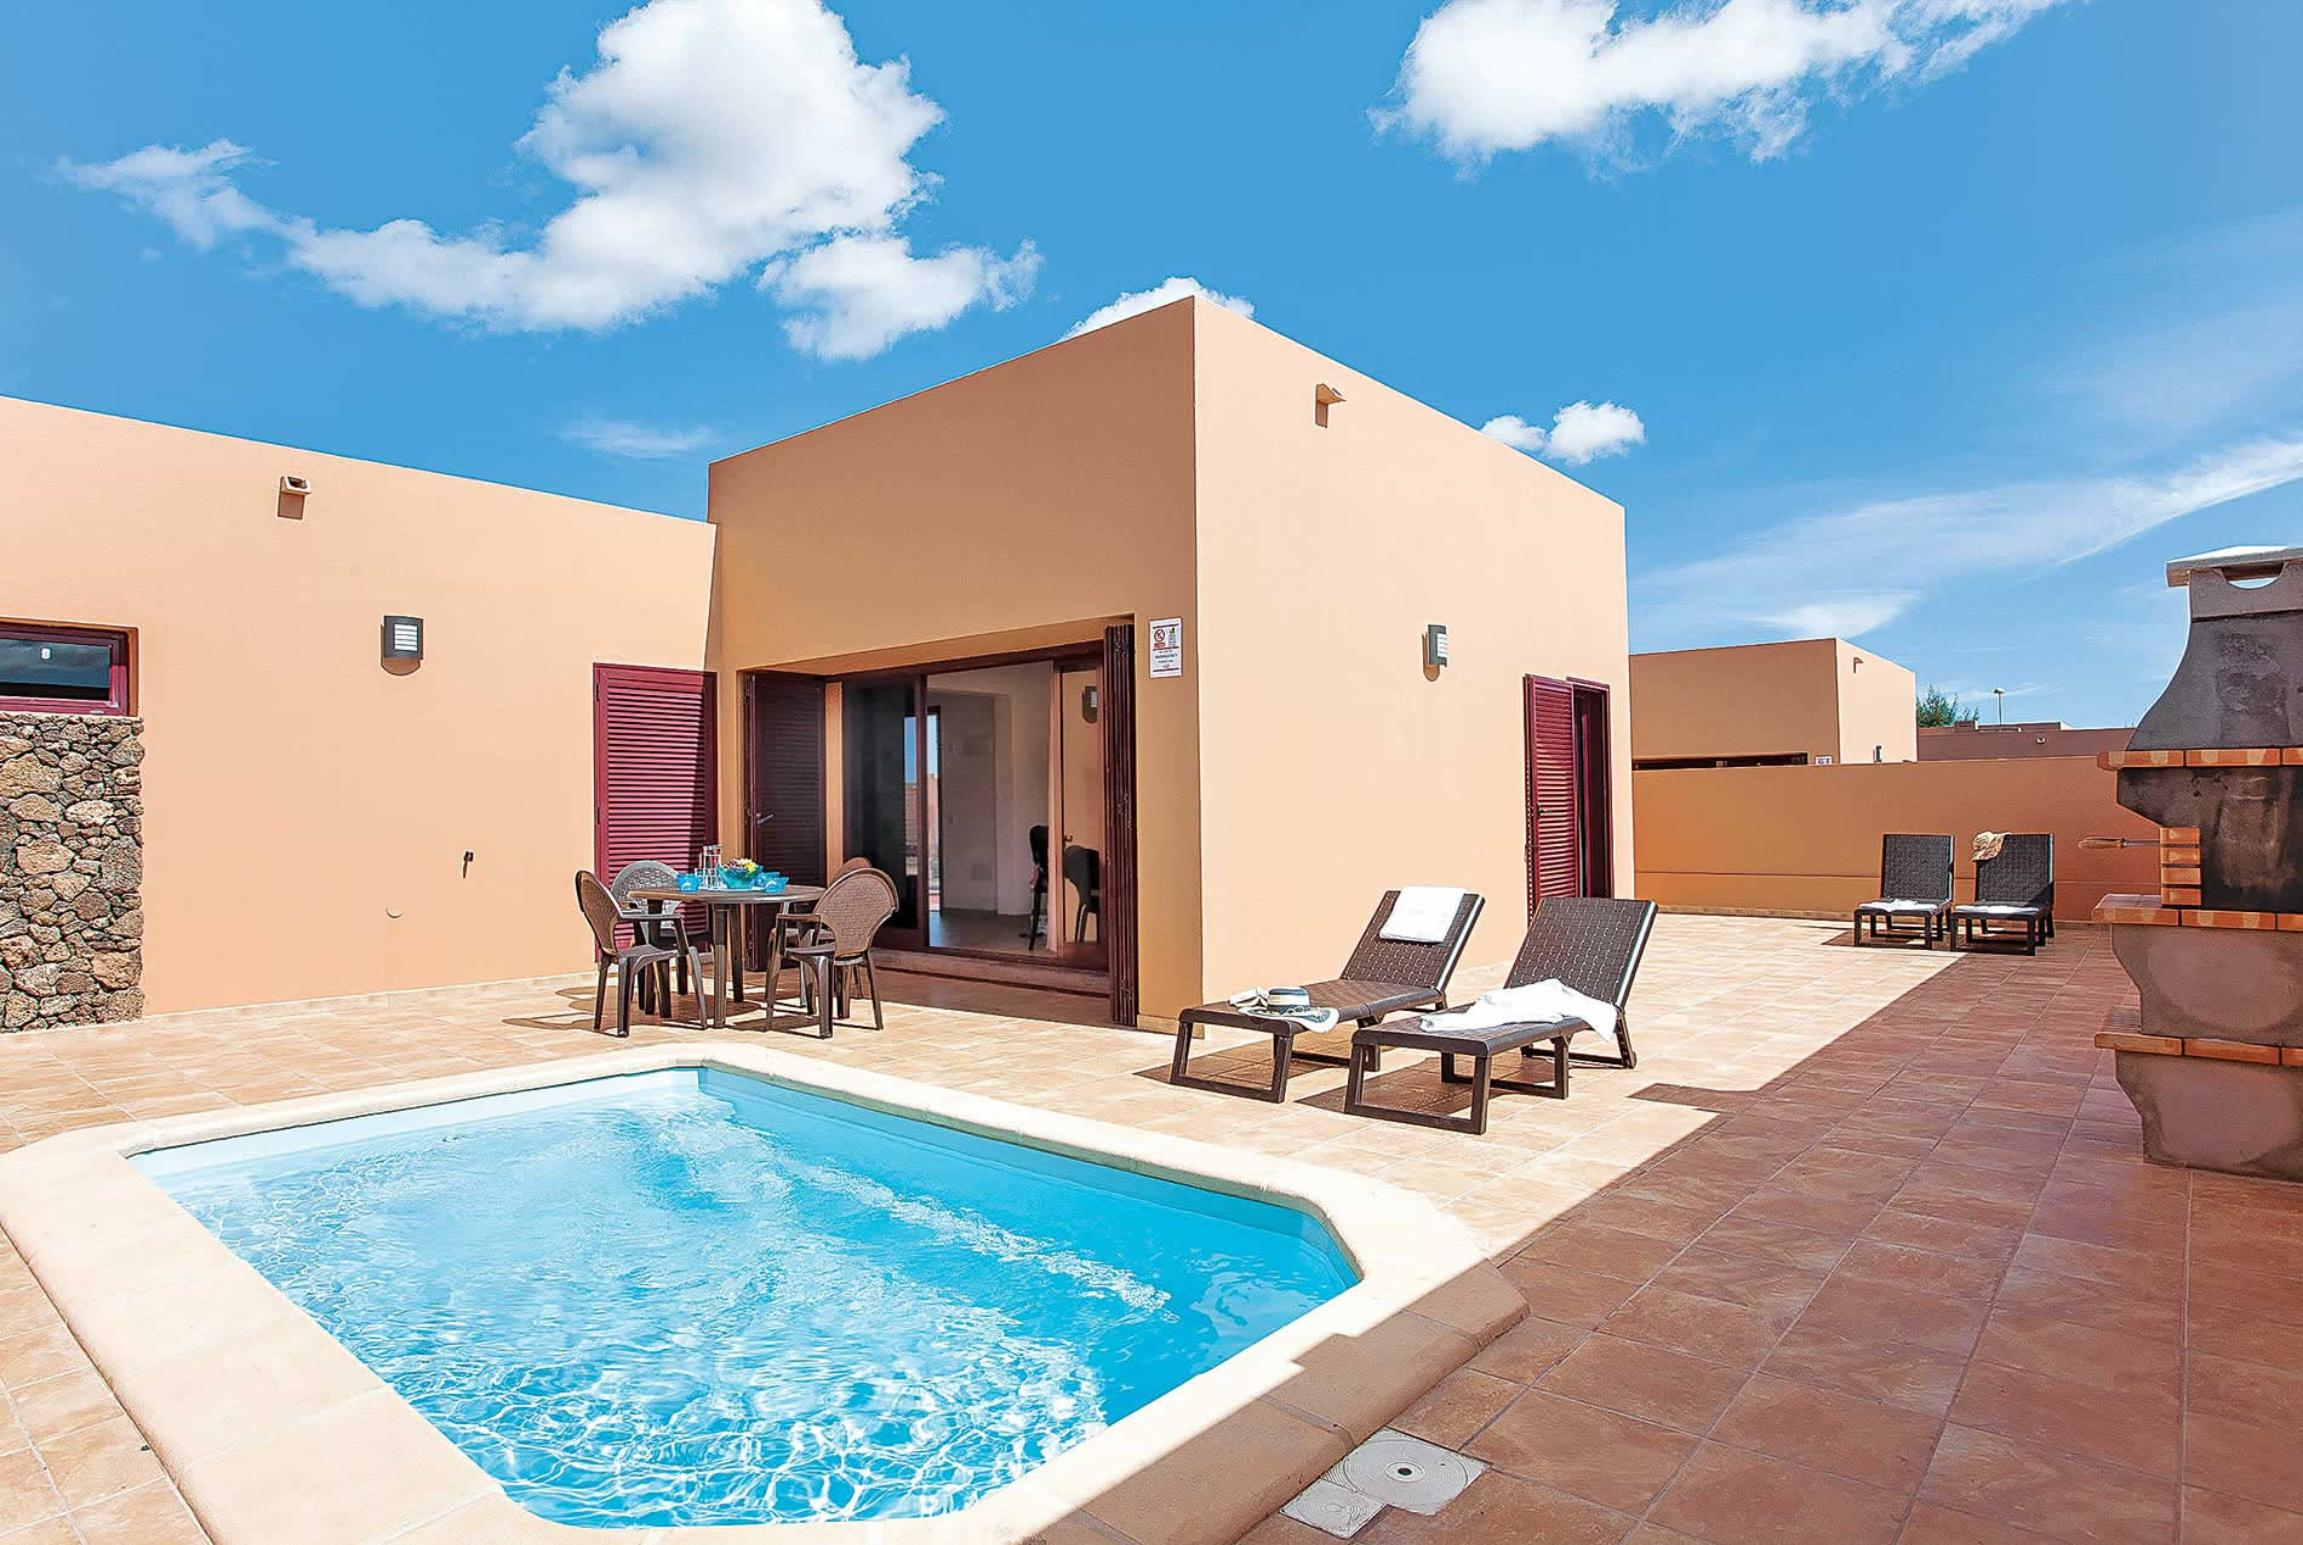 Read more about Flamingo villa